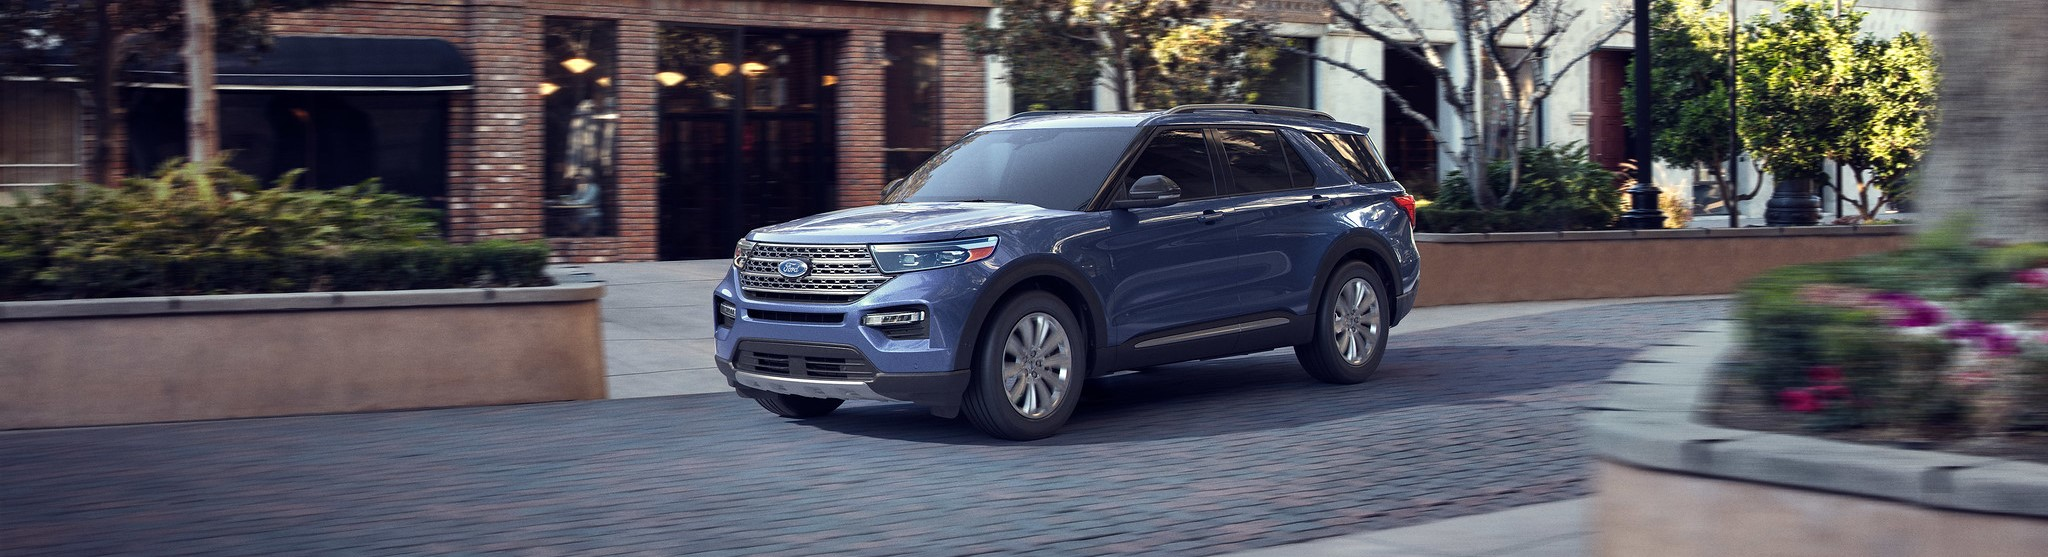 2020 Ford Explorer | Toronto, ON